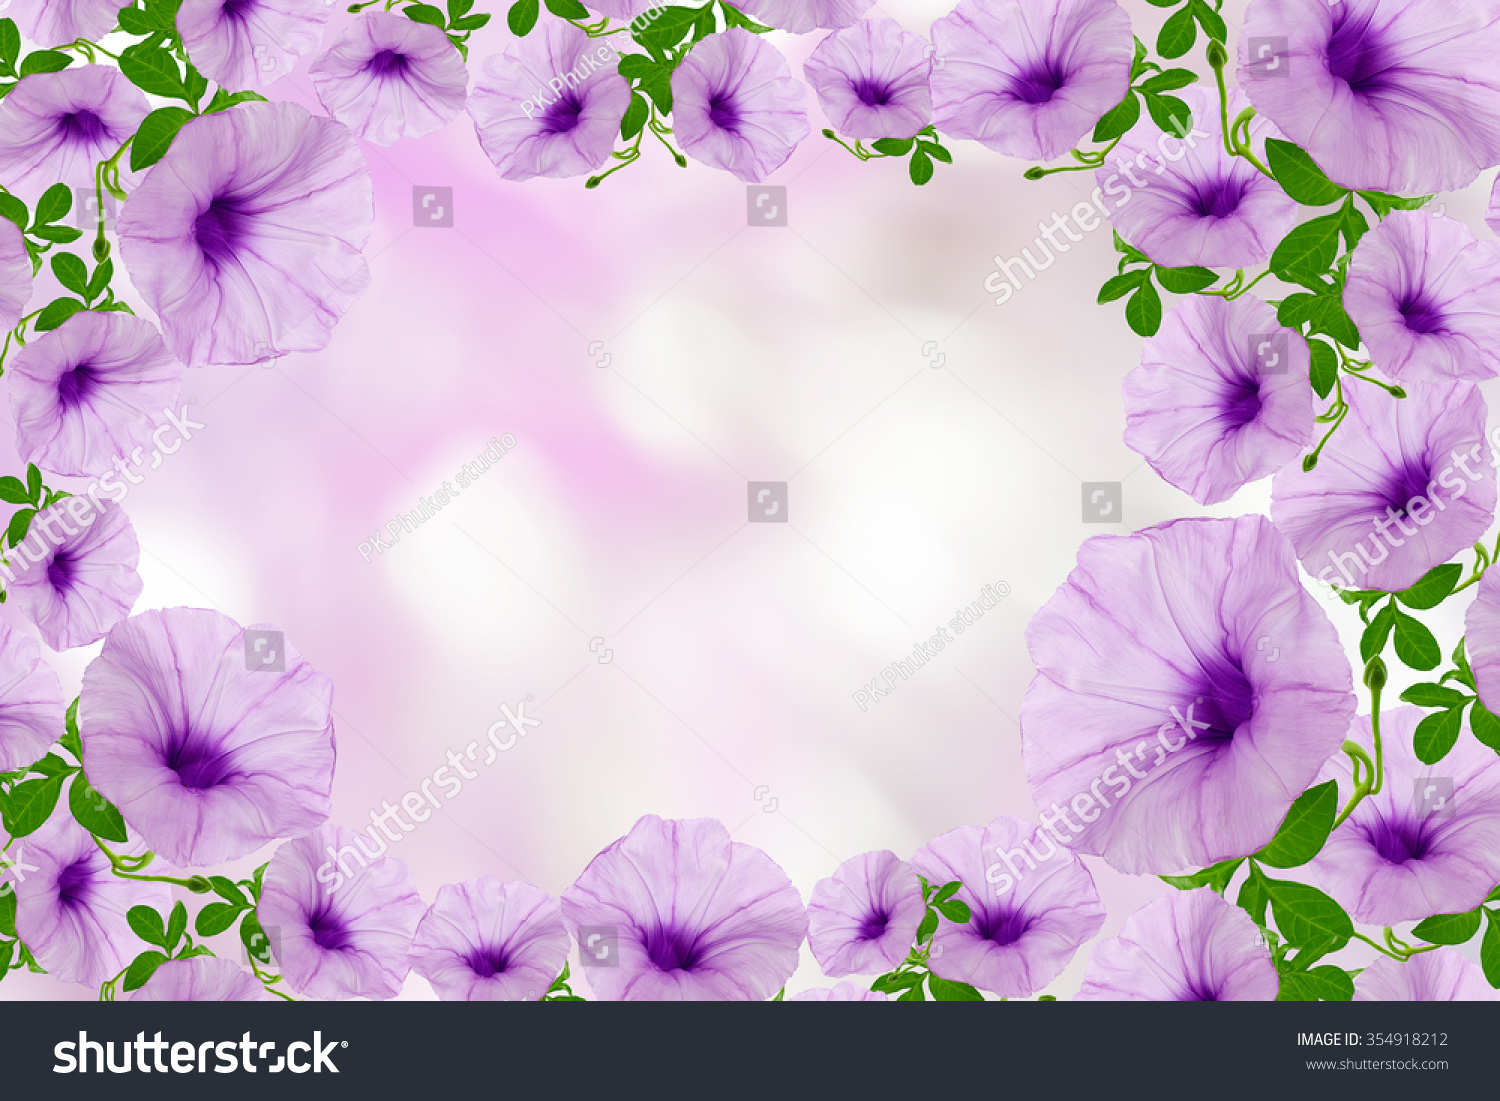 Beautiful Nature Backgrounds Flower Frames Images Free Download